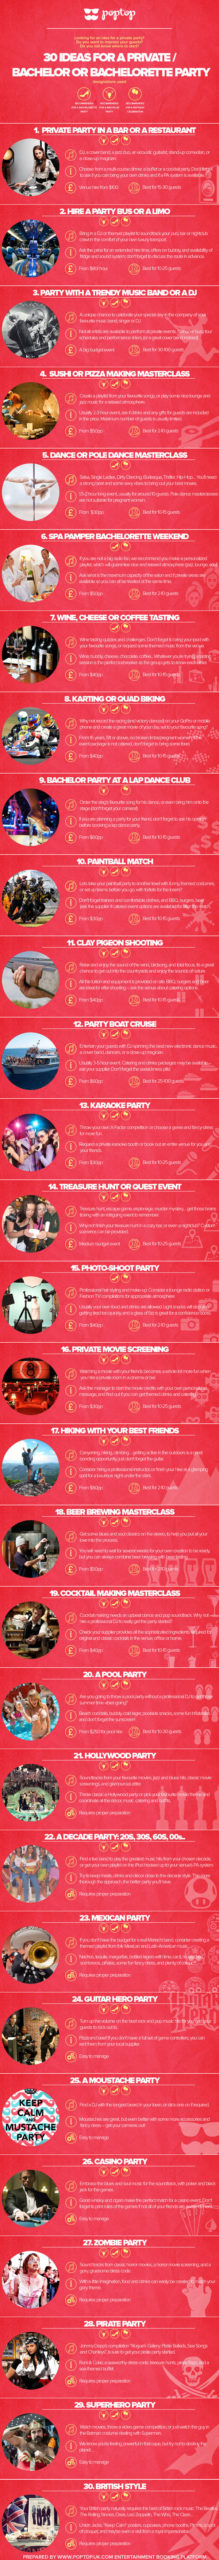 30 ideas for a private party or a bachelor party 900